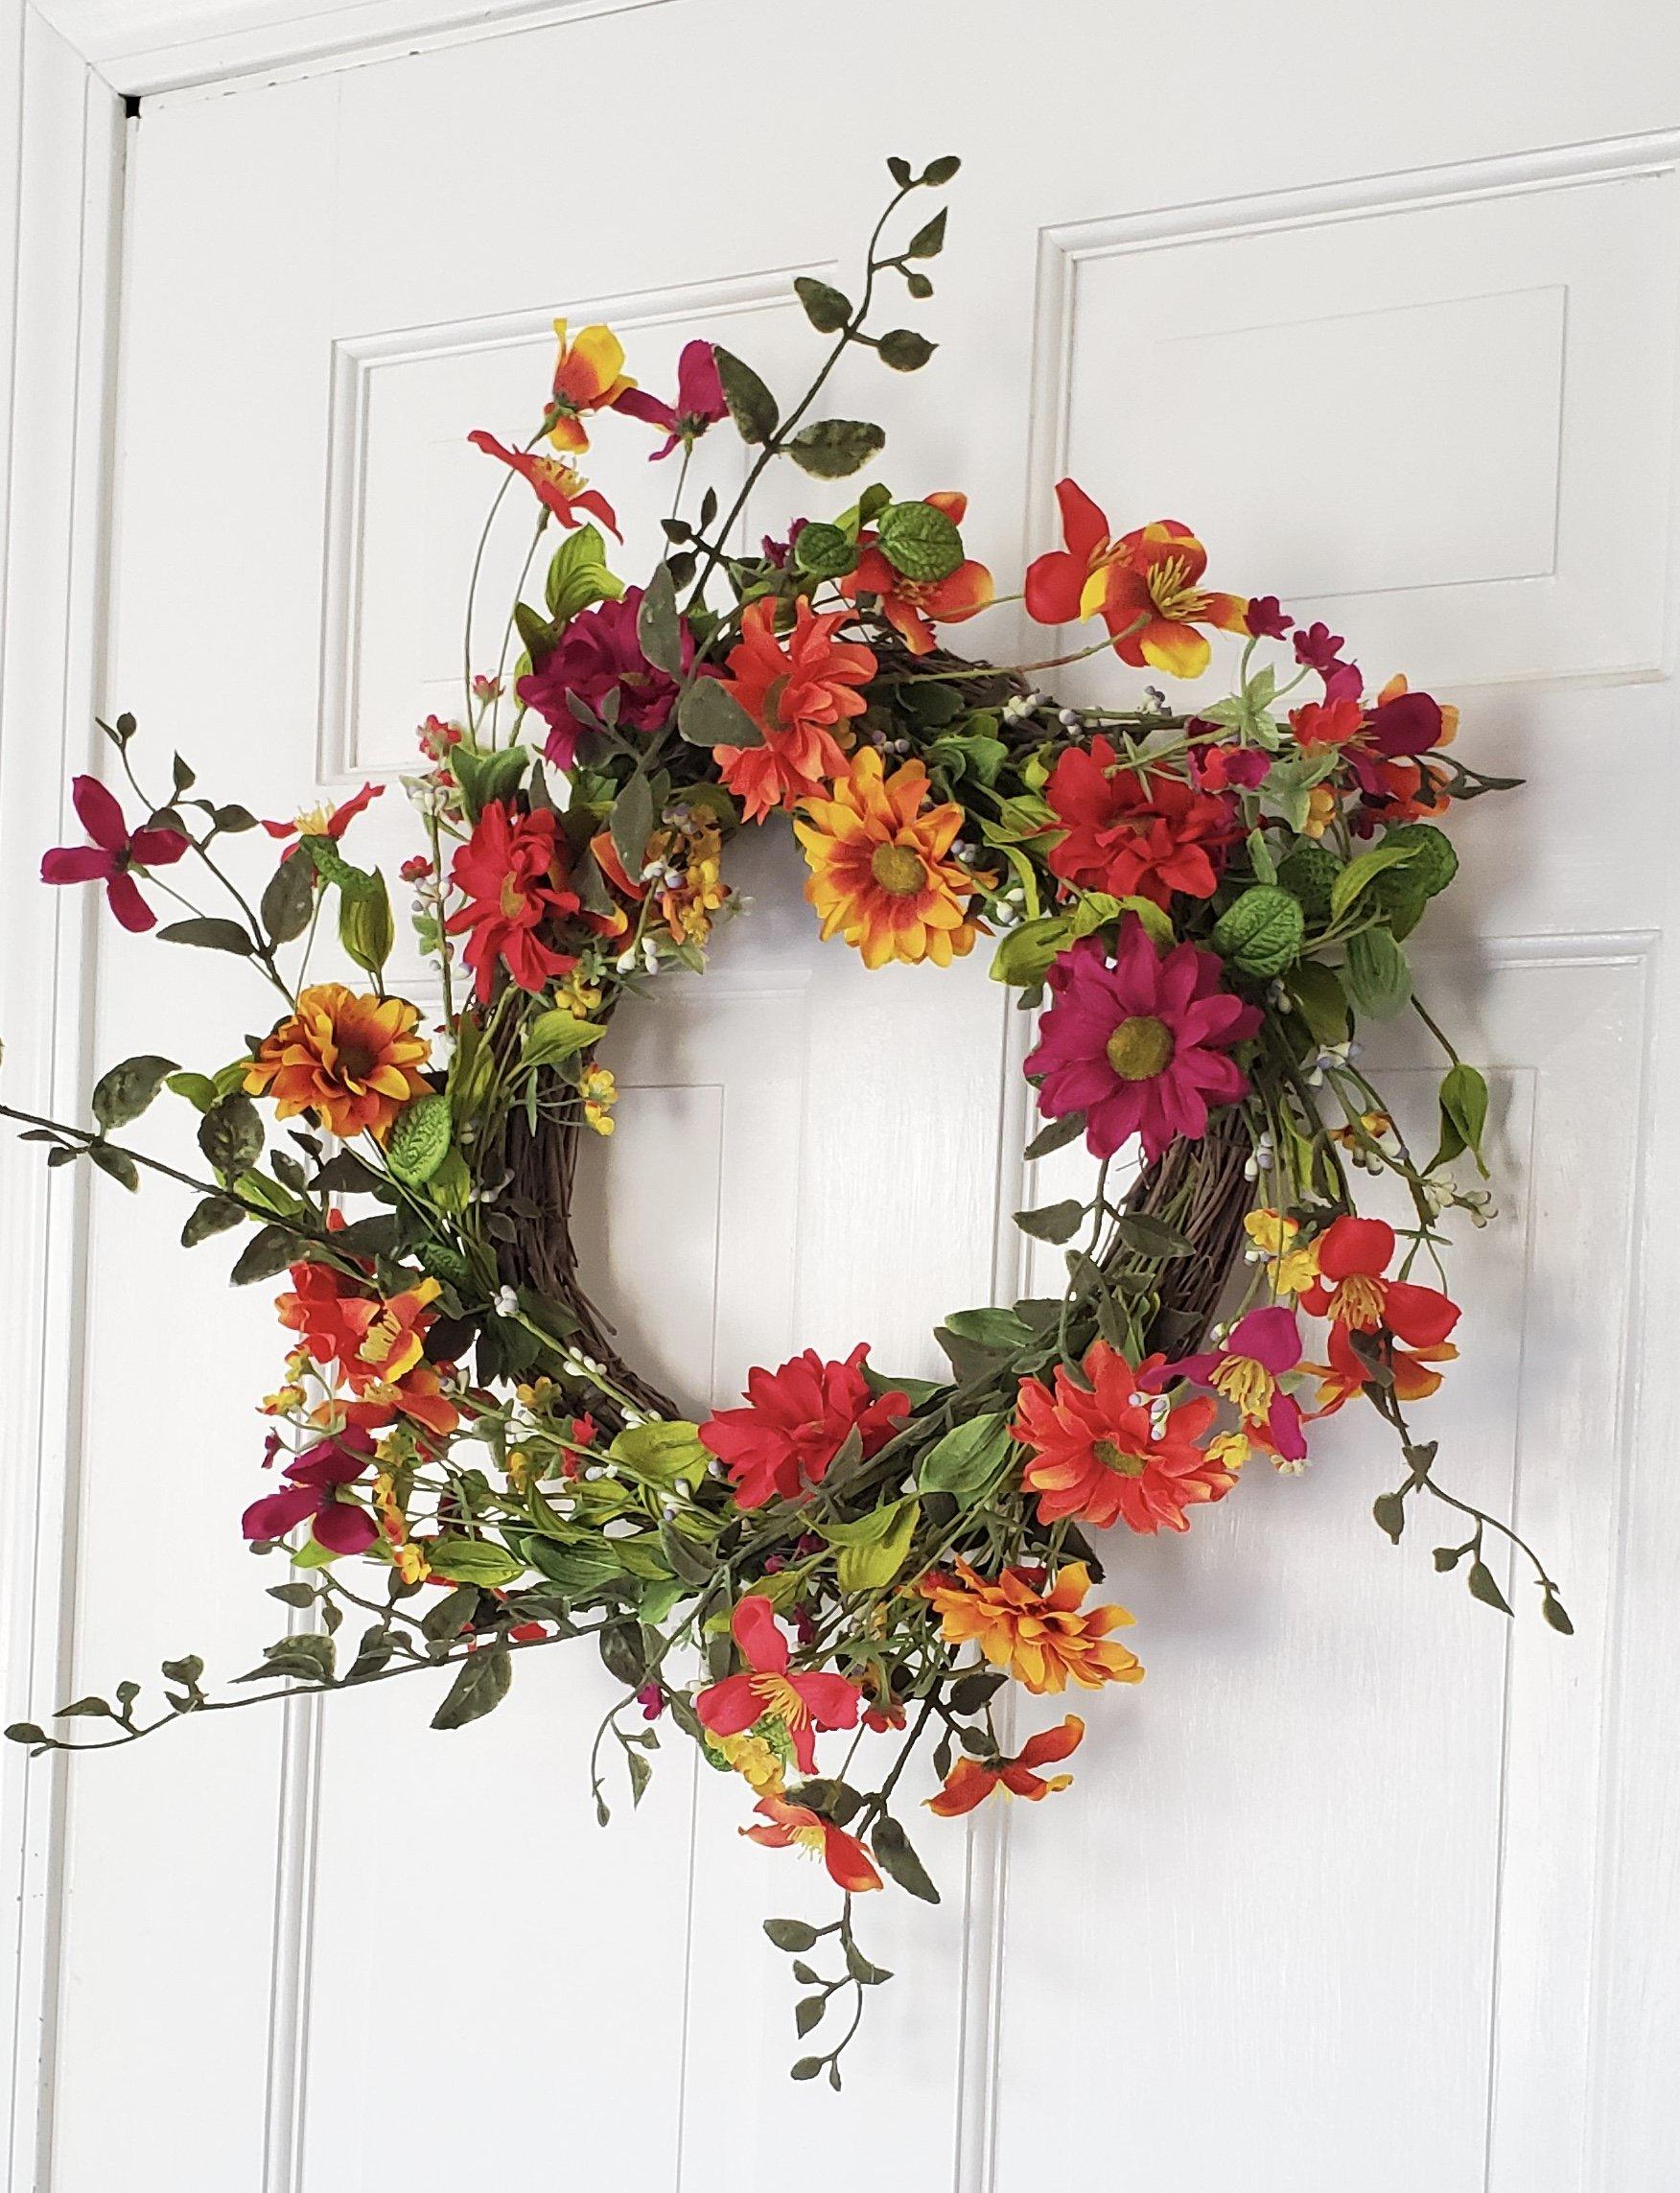 "Spring Twig Wreath with Vibrant Wildflowers 24"" Farmhouse Decor A Rustic Feeling"